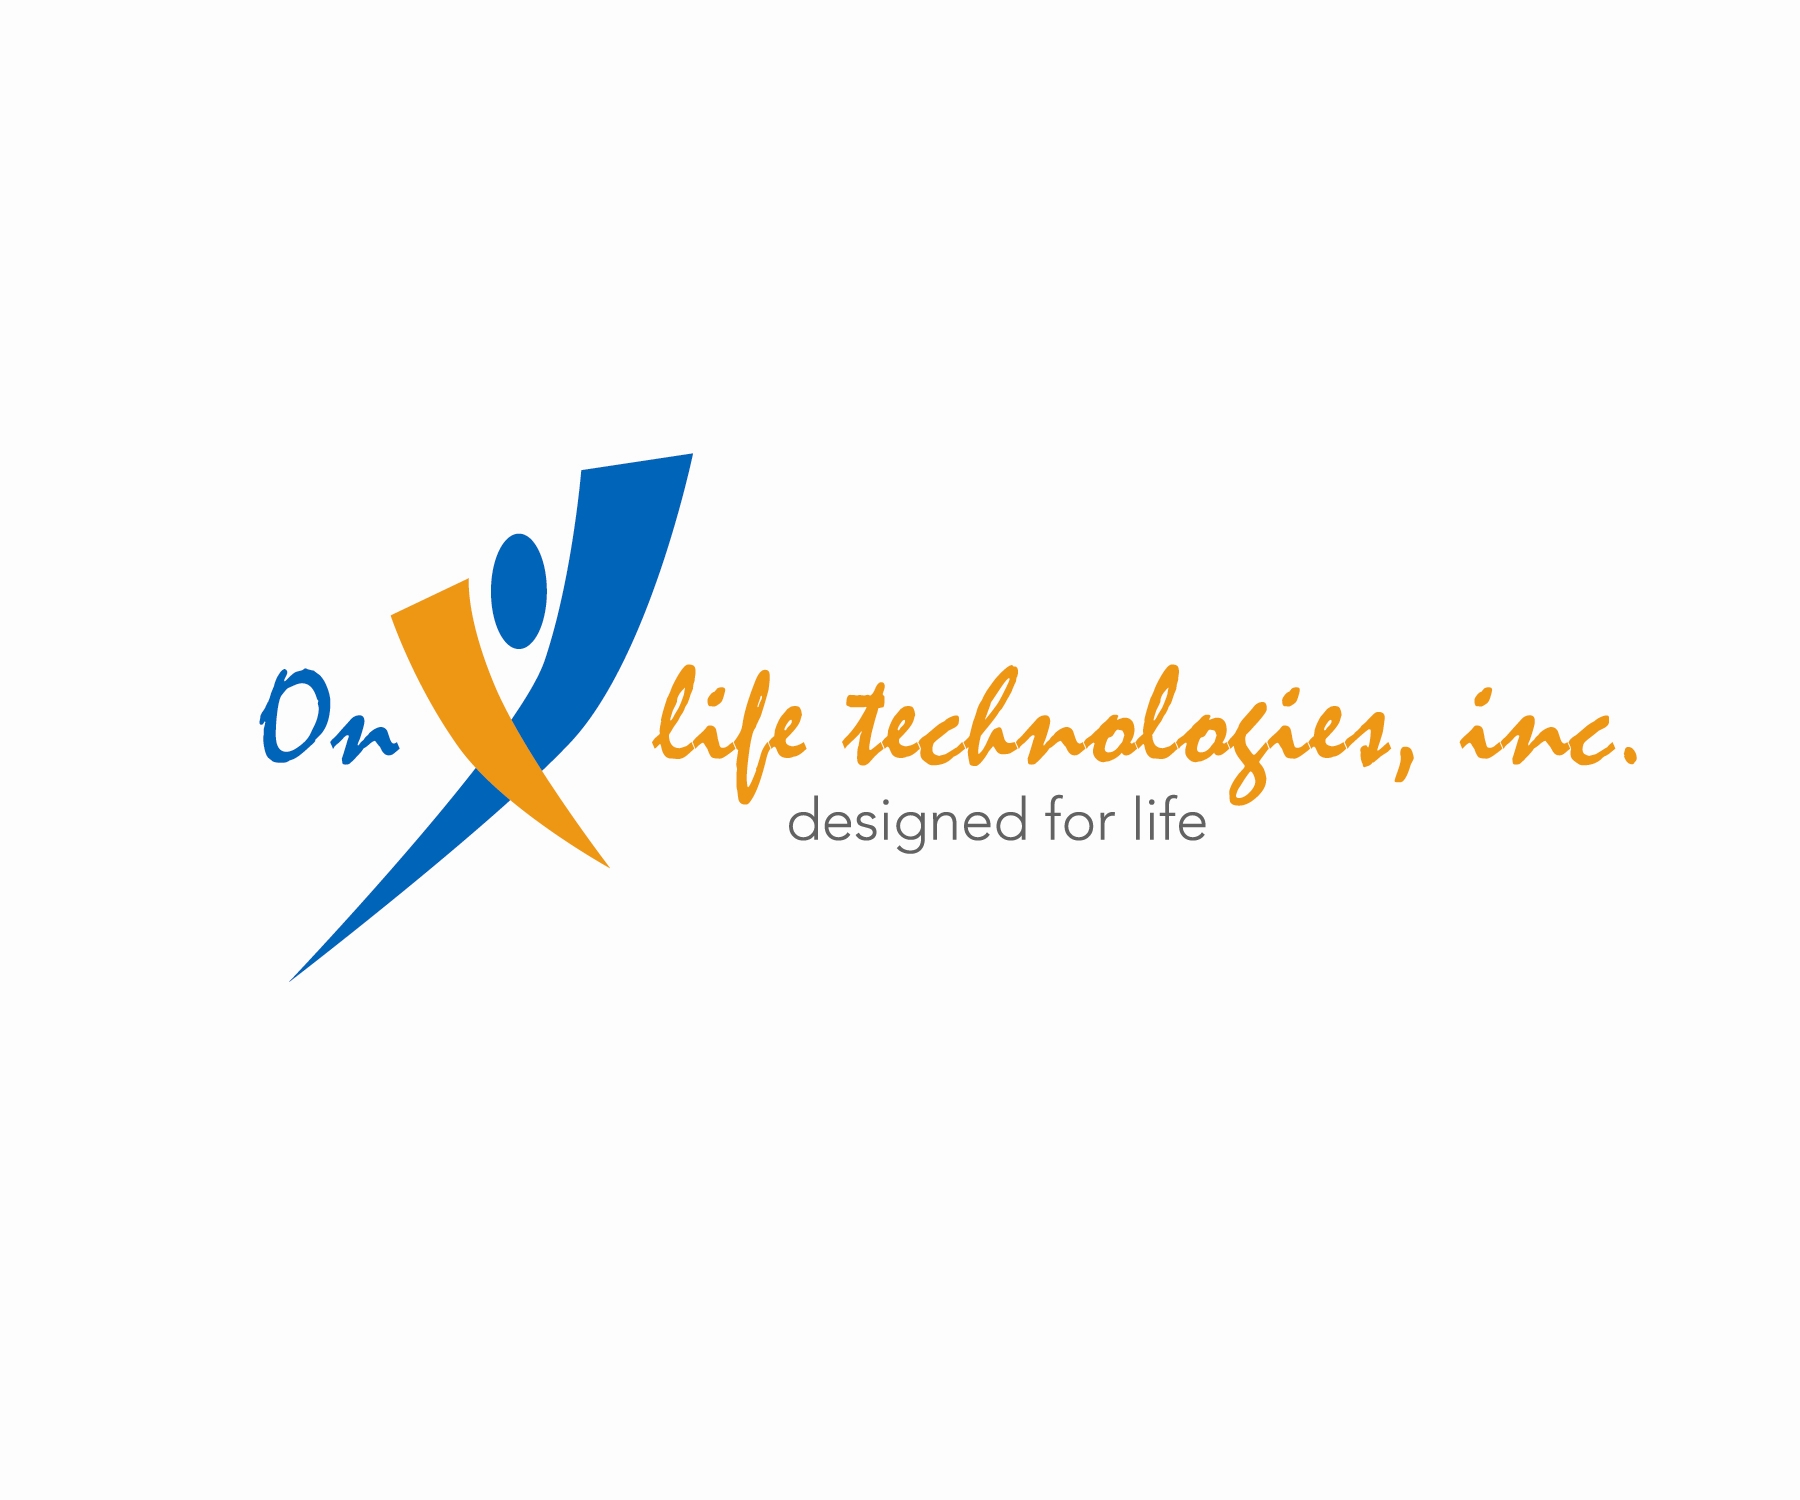 On-X Life Technologies Inc. logo